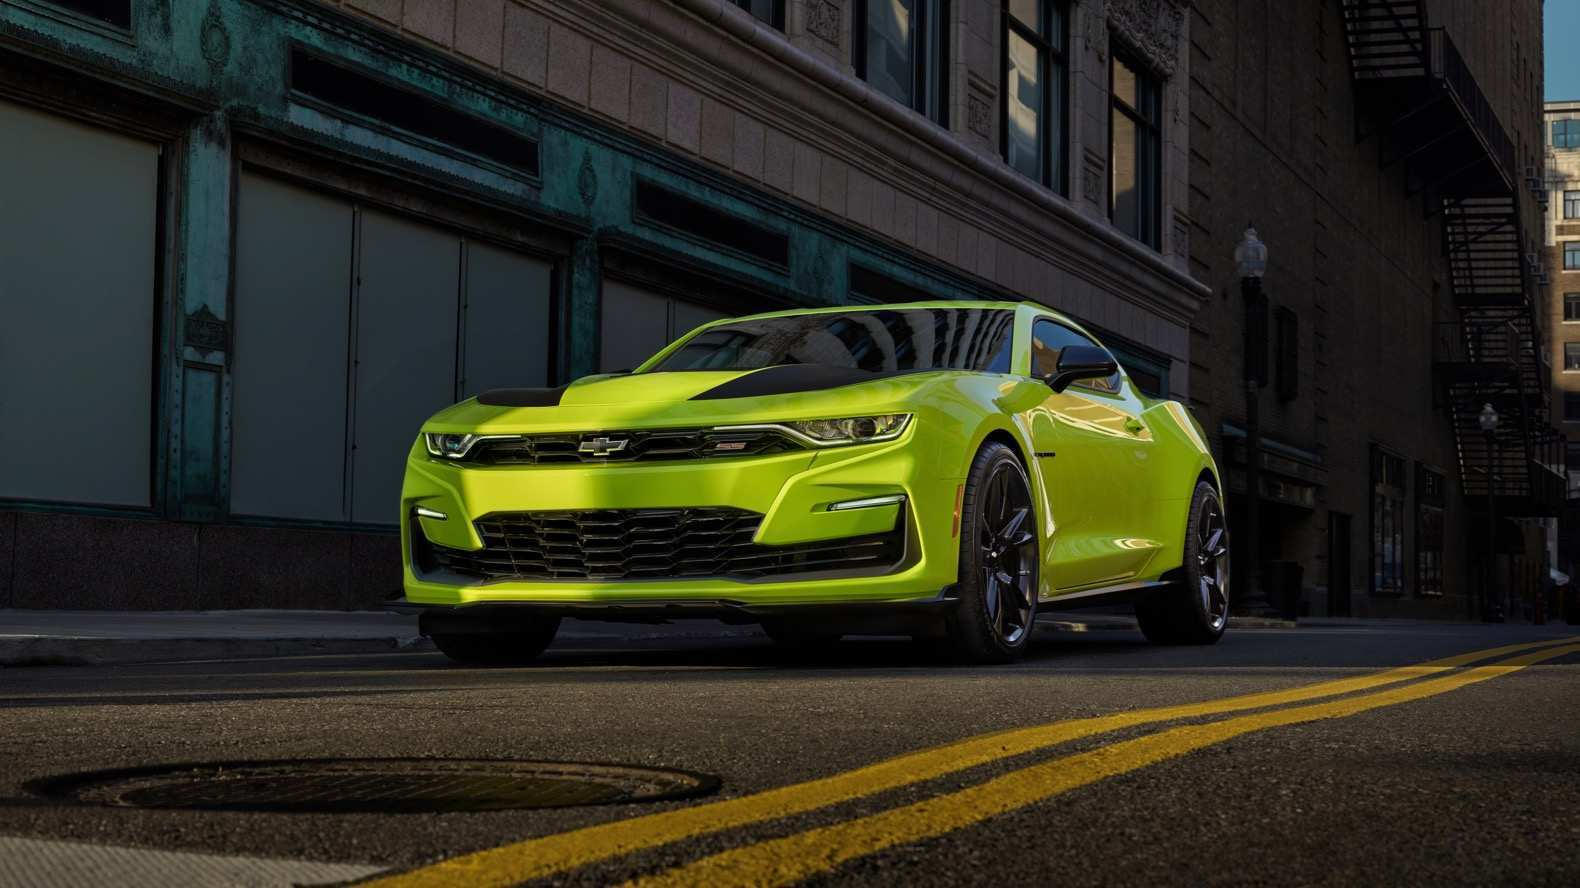 44 Gallery of 2020 The Camaro Ss Exterior for 2020 The Camaro Ss